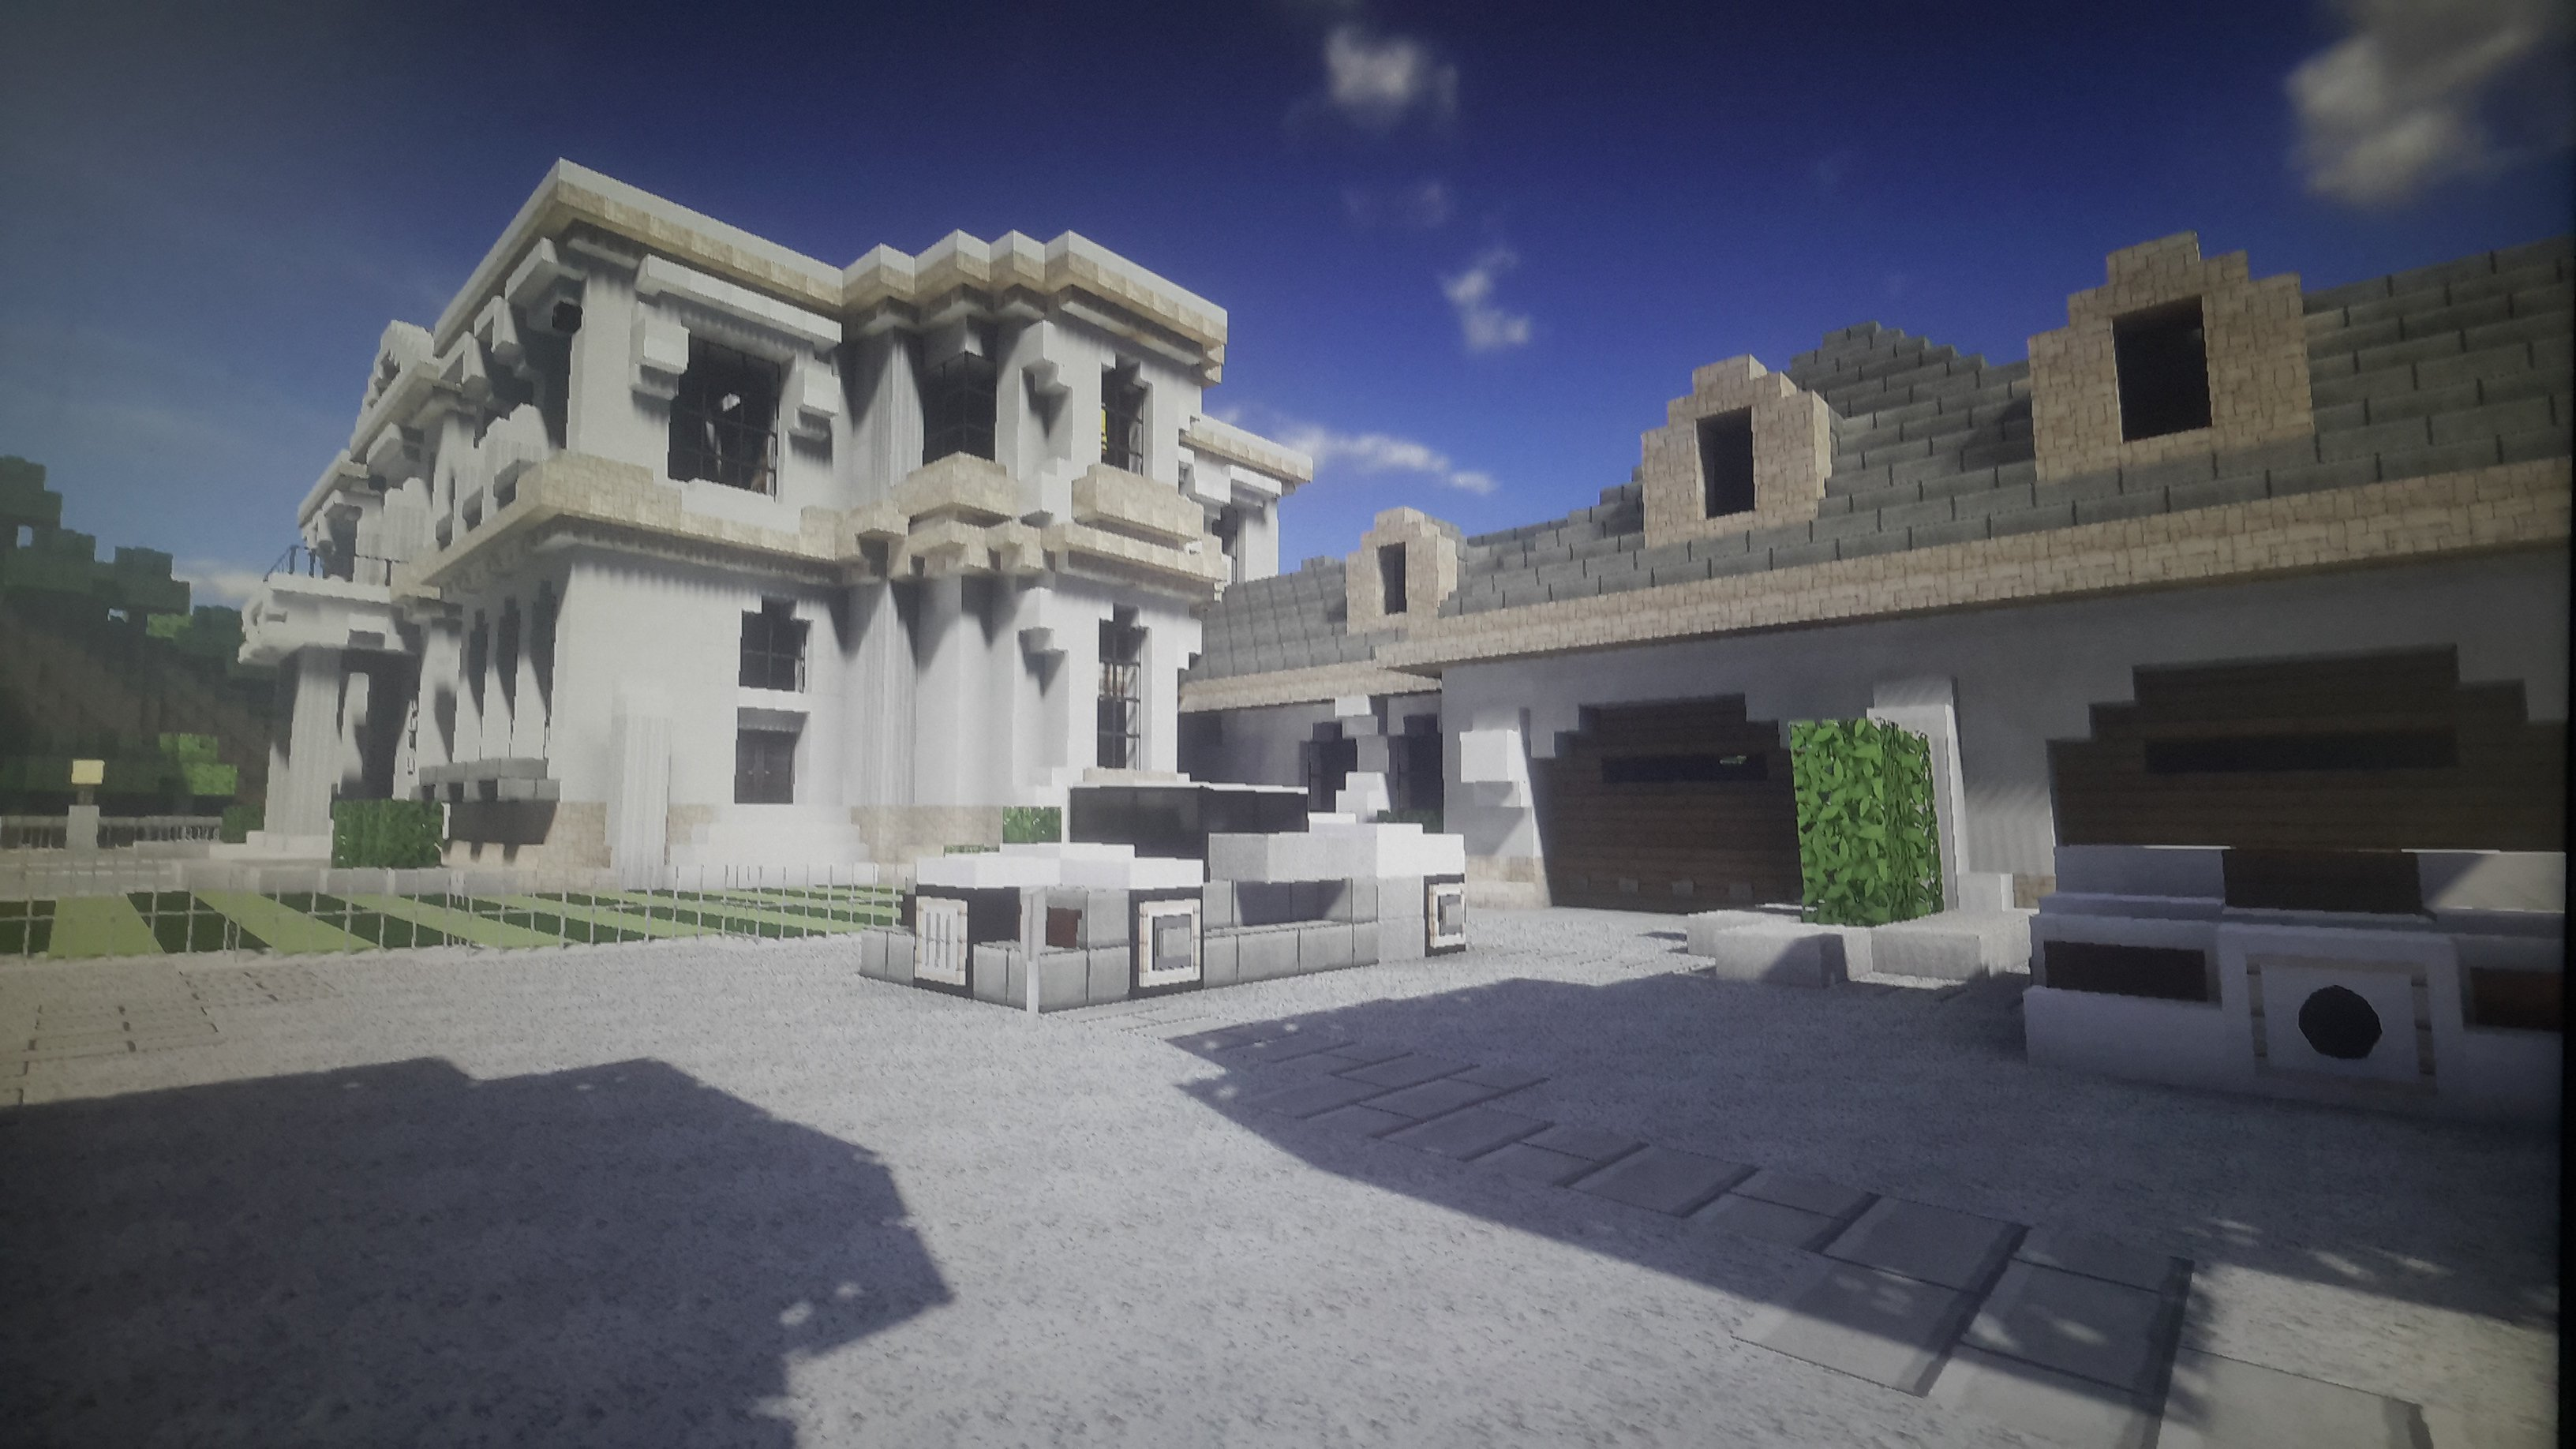 Descargar «Wentworth Mansion» (15 mb) mapa de Minecraft